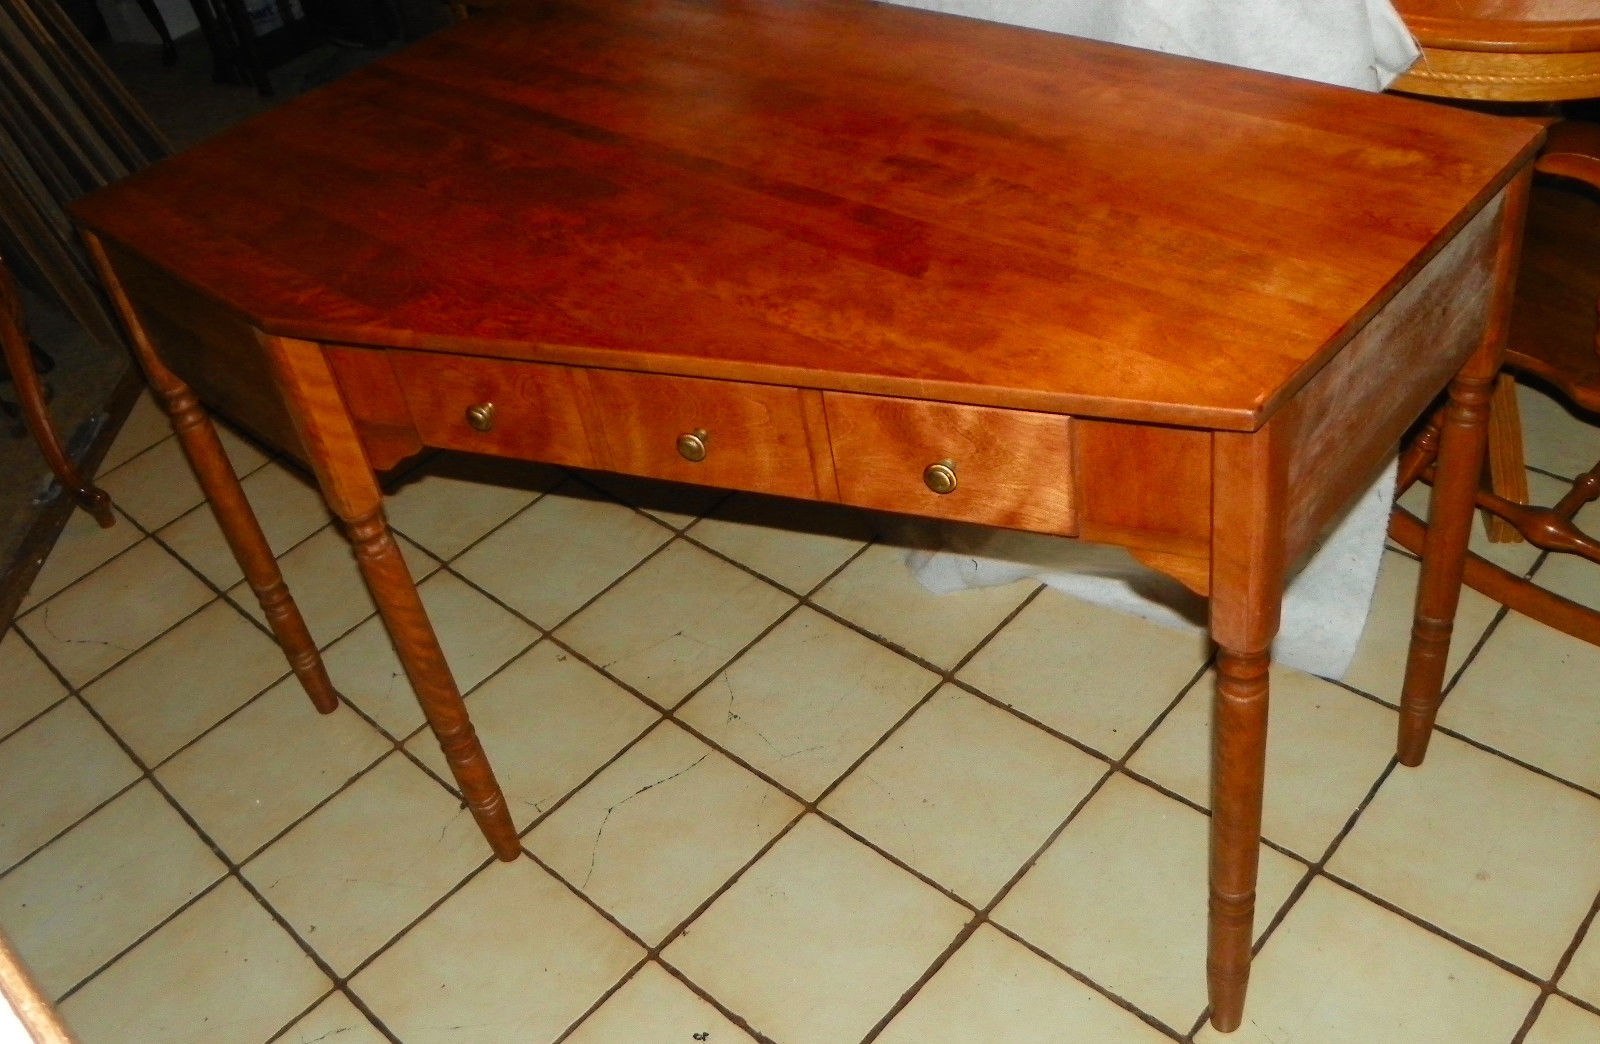 Remarkable Maple Ethan Allen Mid Century Corner Desk And 50 Similar Items Gmtry Best Dining Table And Chair Ideas Images Gmtryco